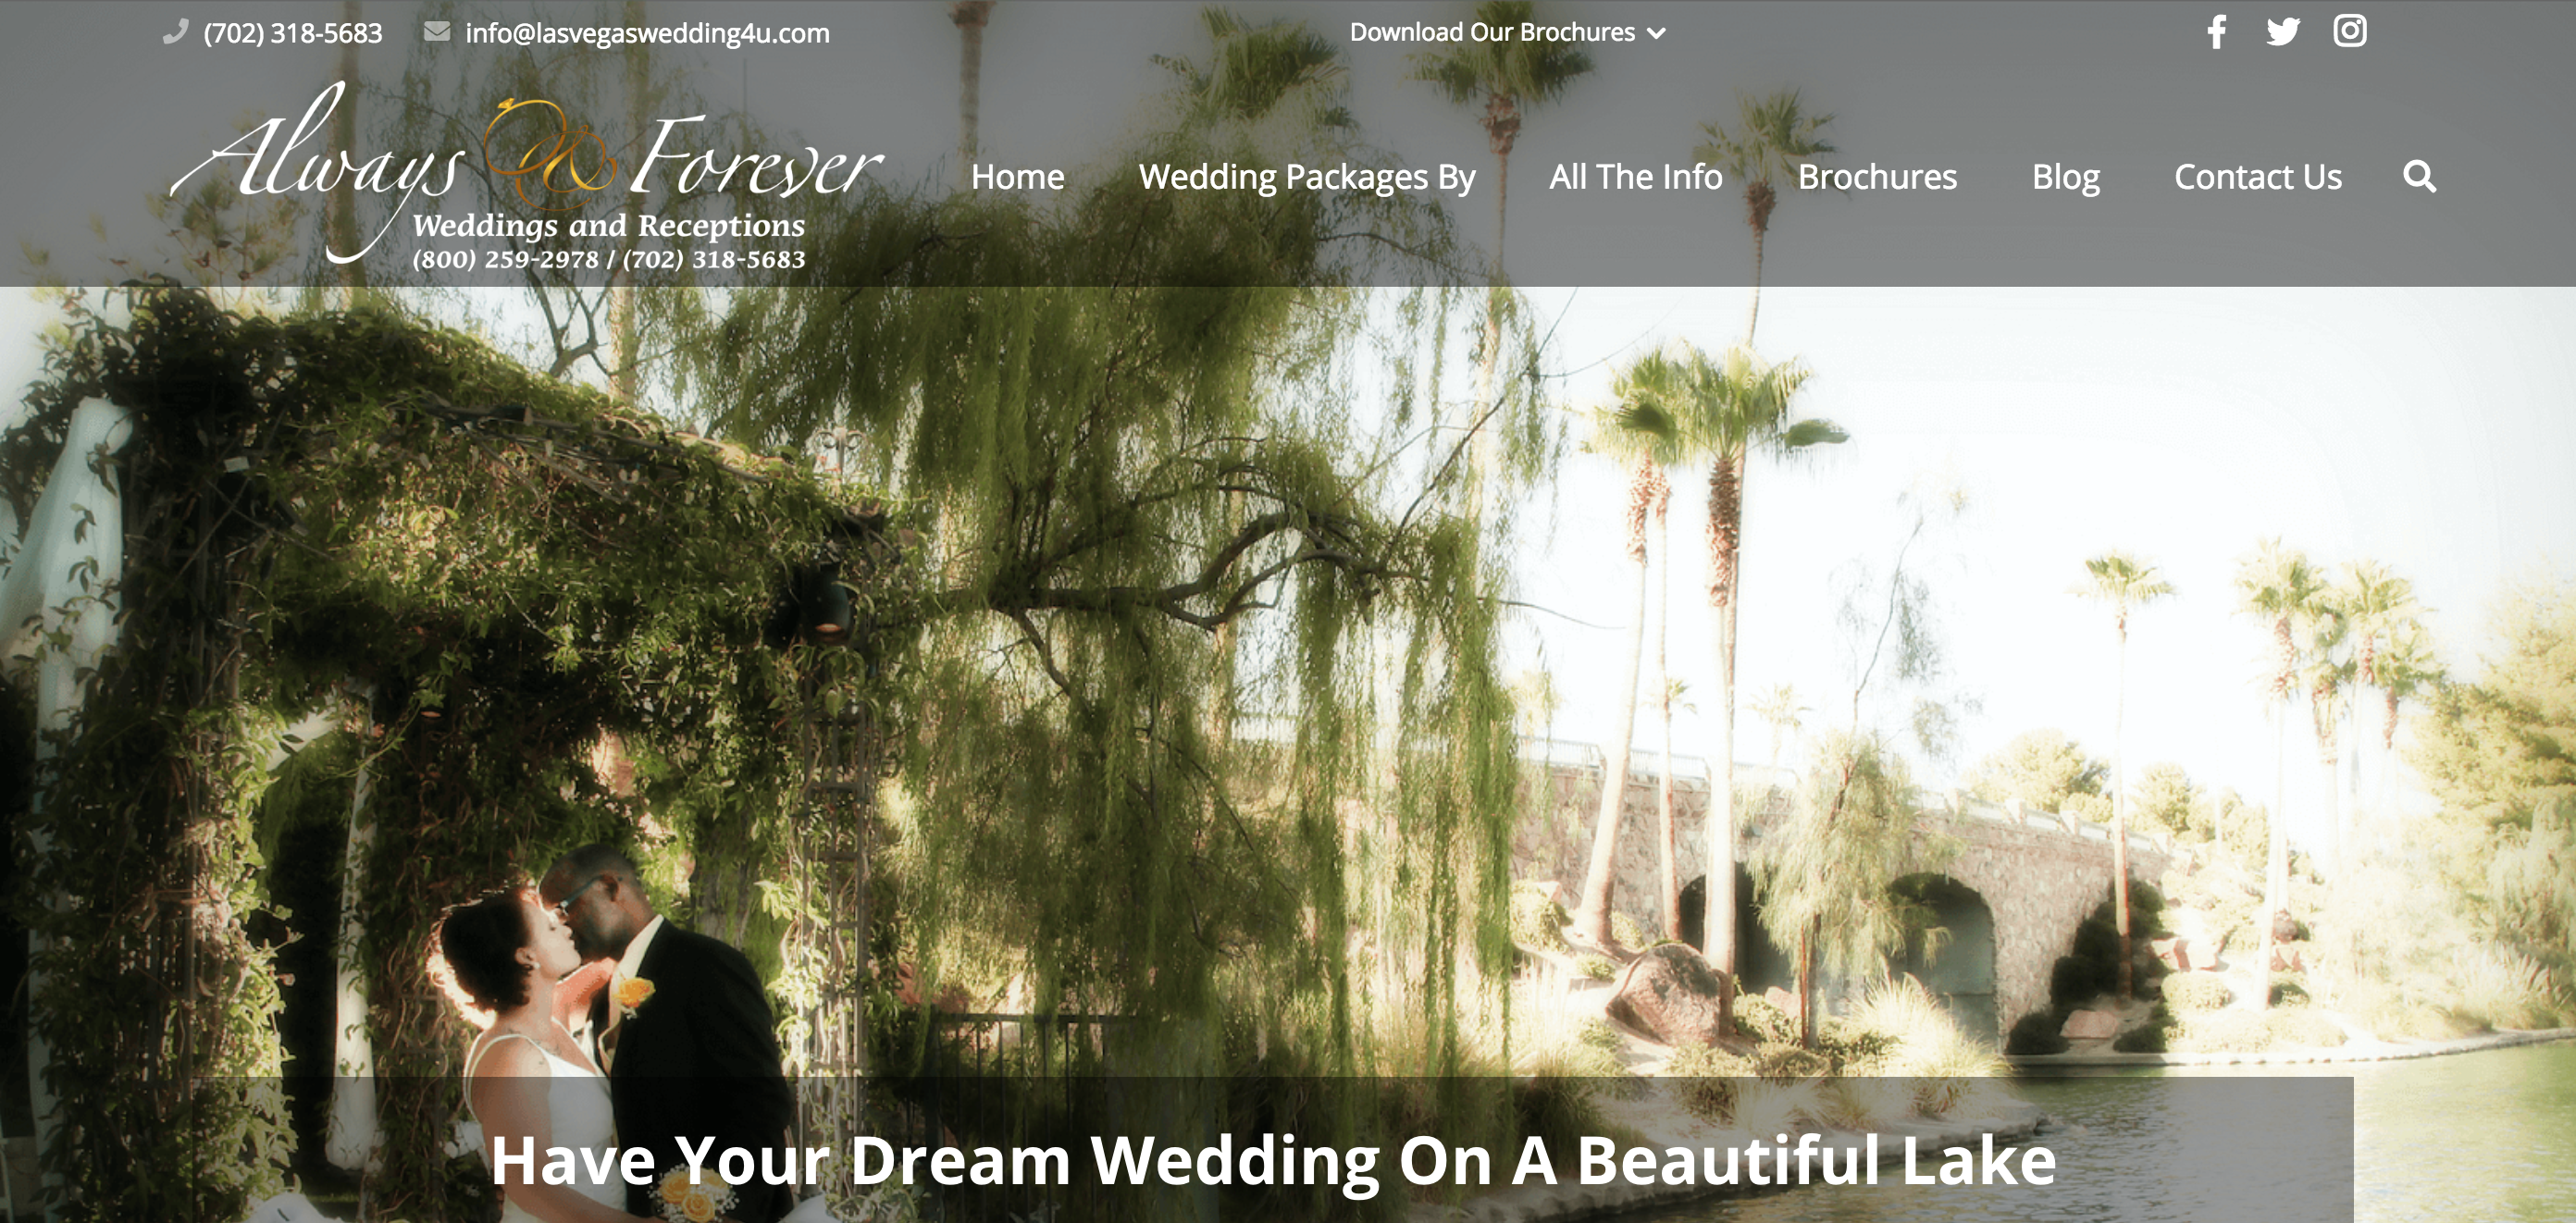 Always & Forever Weddings Website Home Page